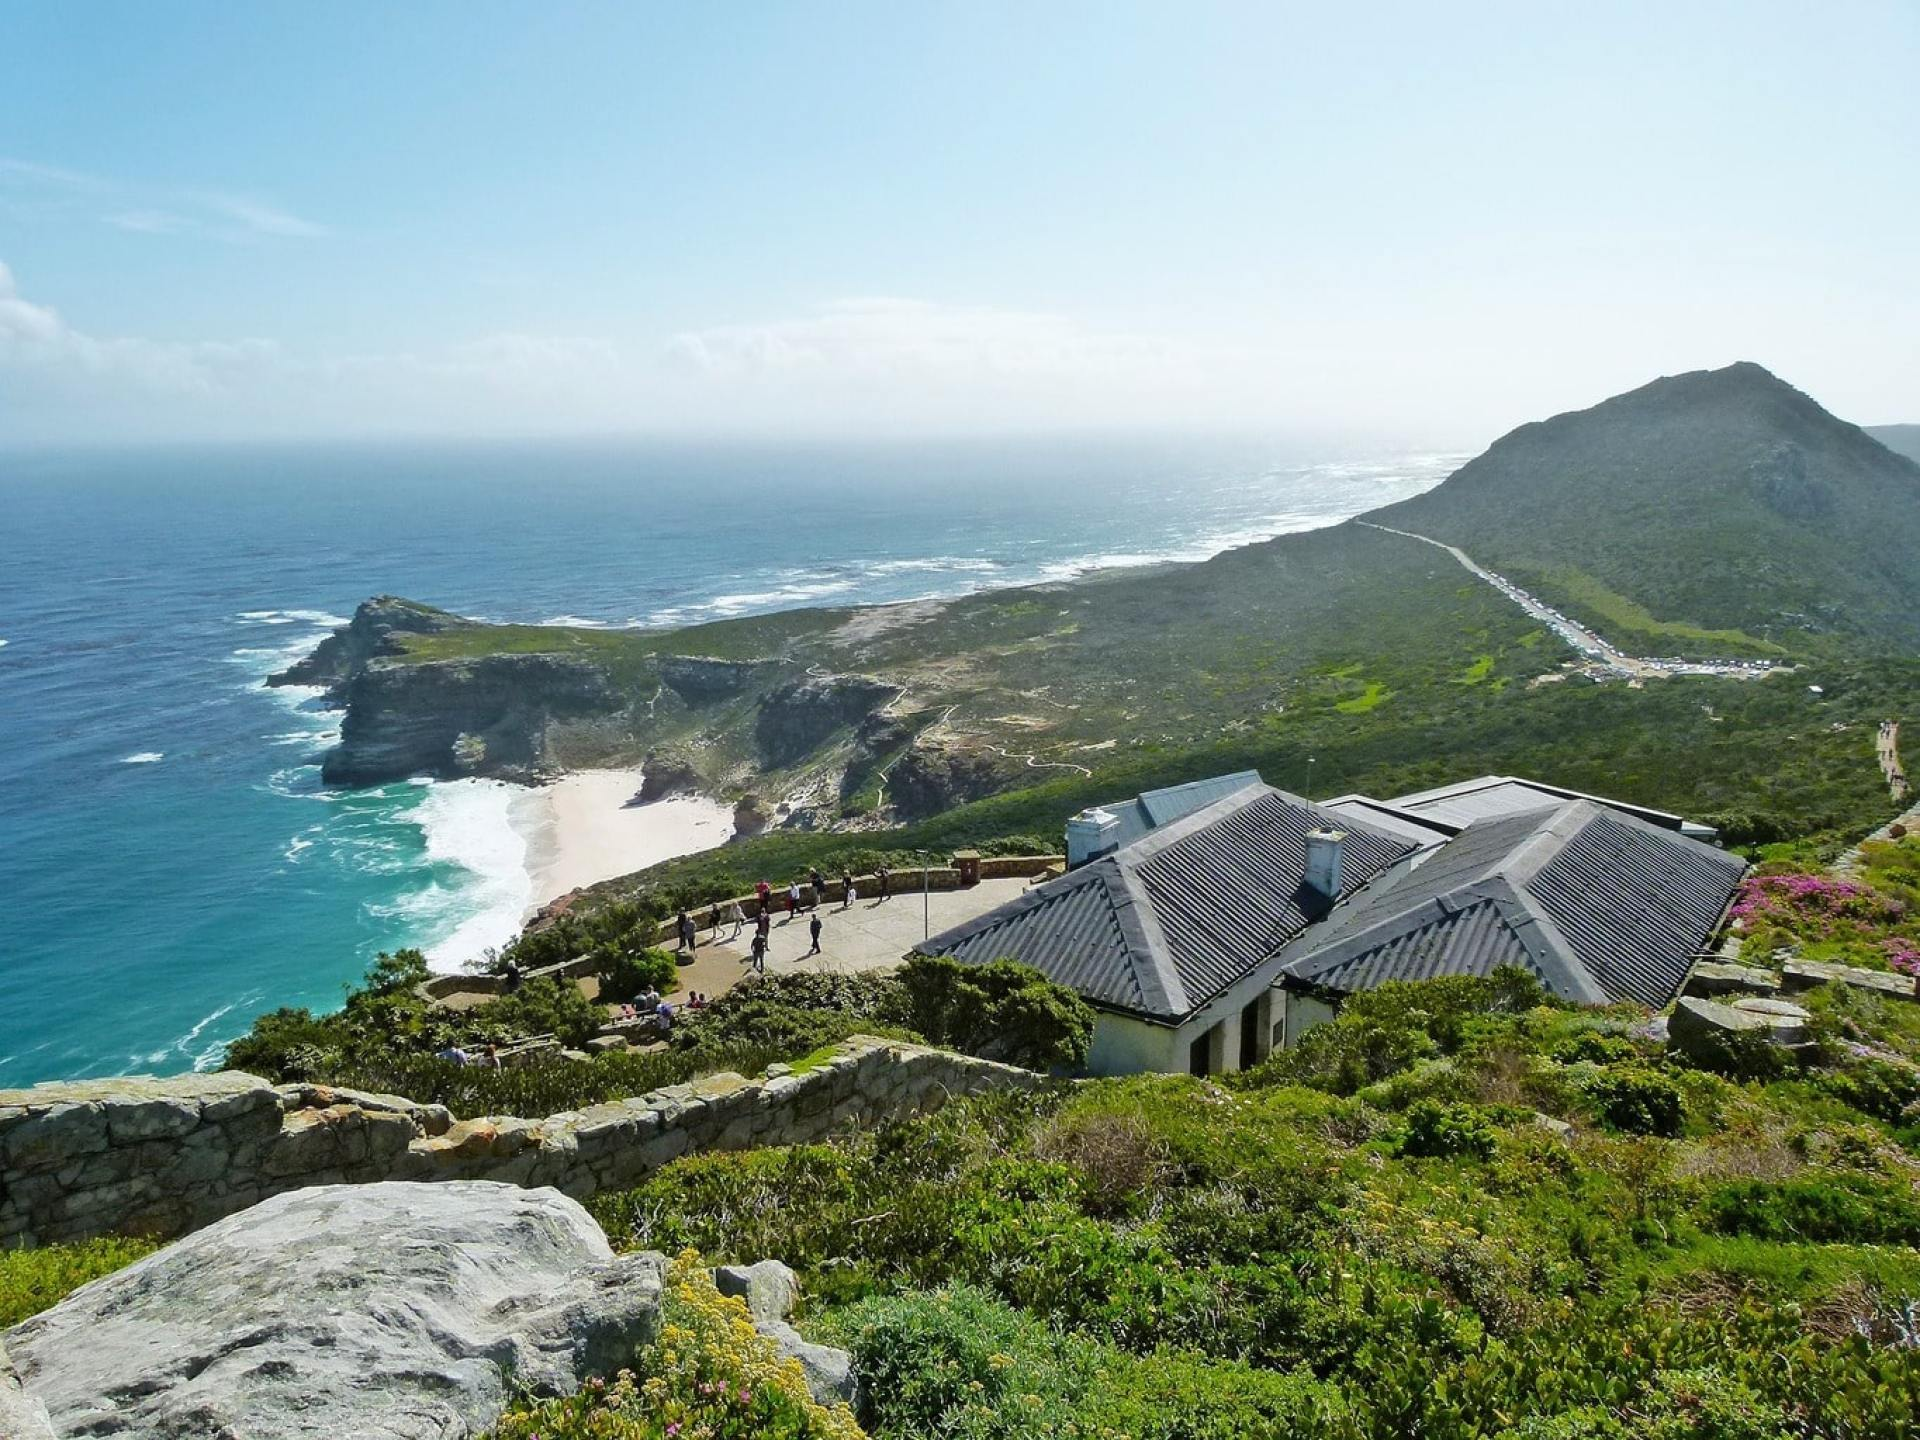 Cape of Good Hope Nature Reserve